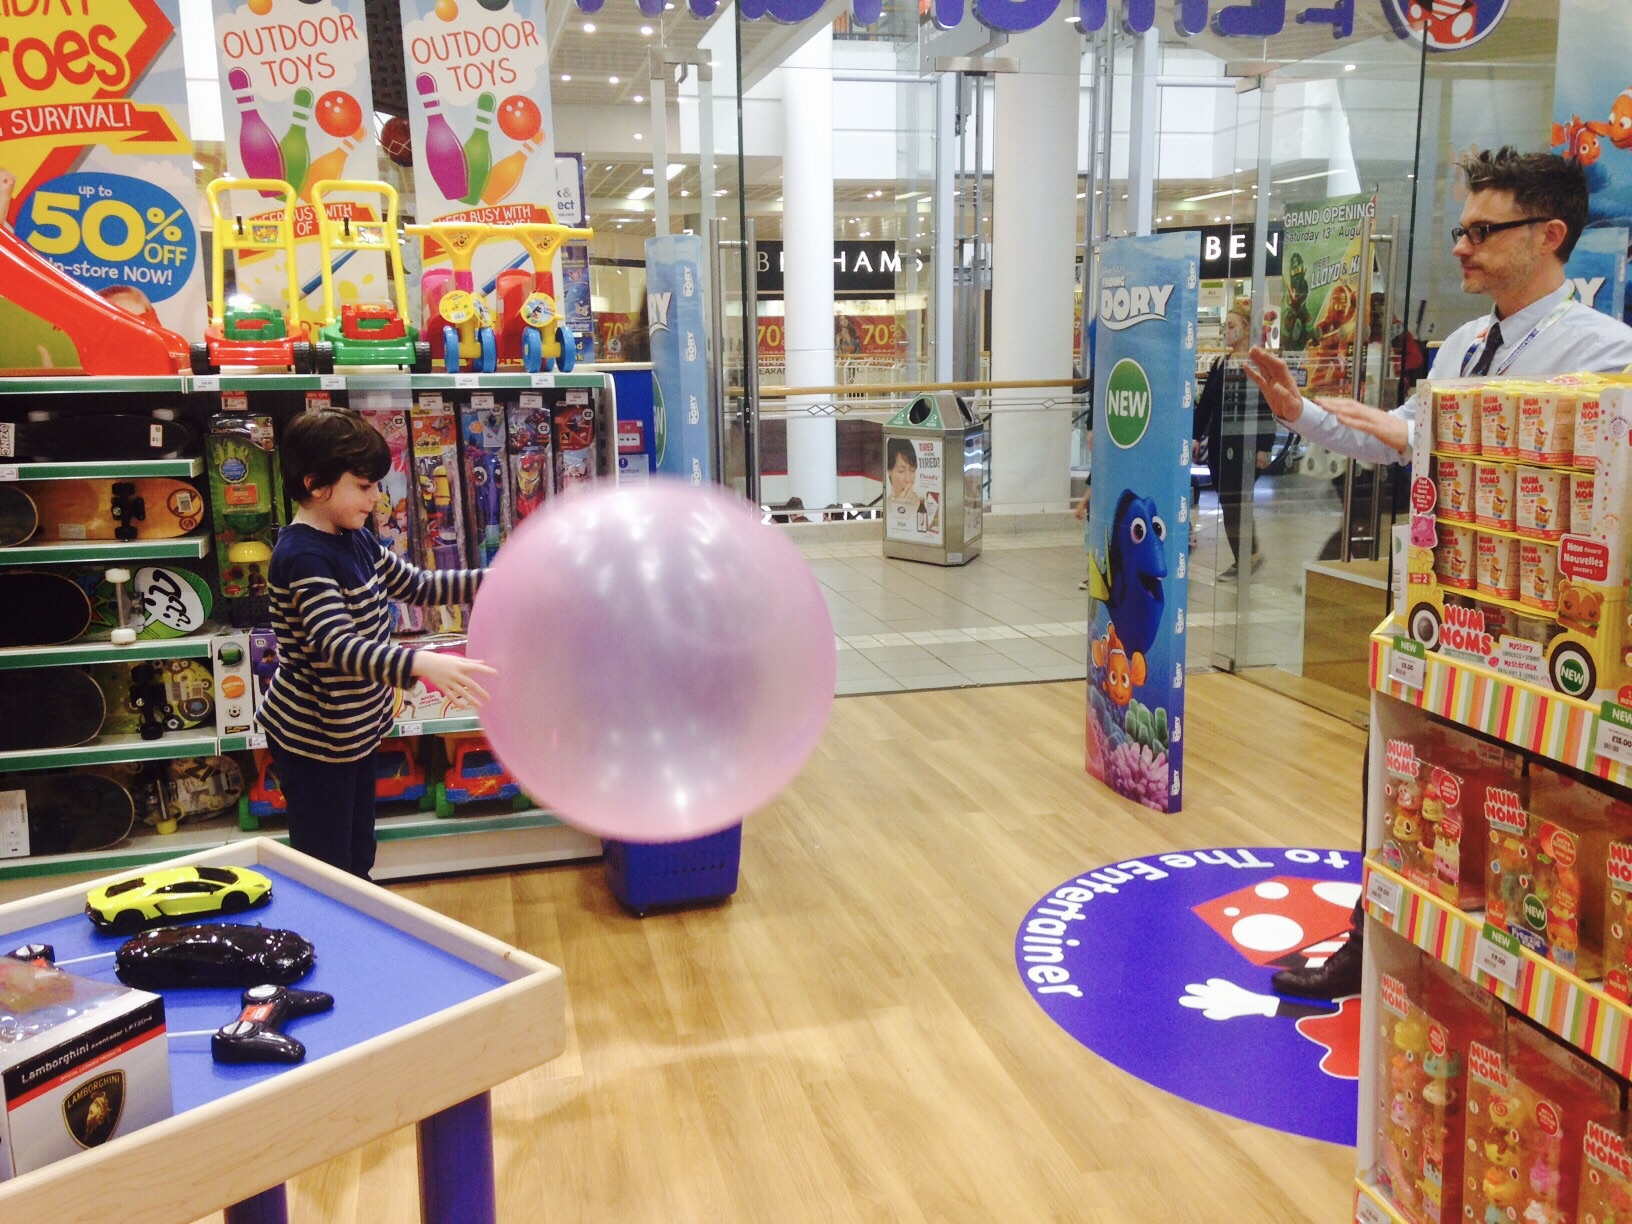 Wubble Bubble demo- it's now on Smix' birthday list (p.s. It's £2 cheaper in The Entertainer than on Amazon)